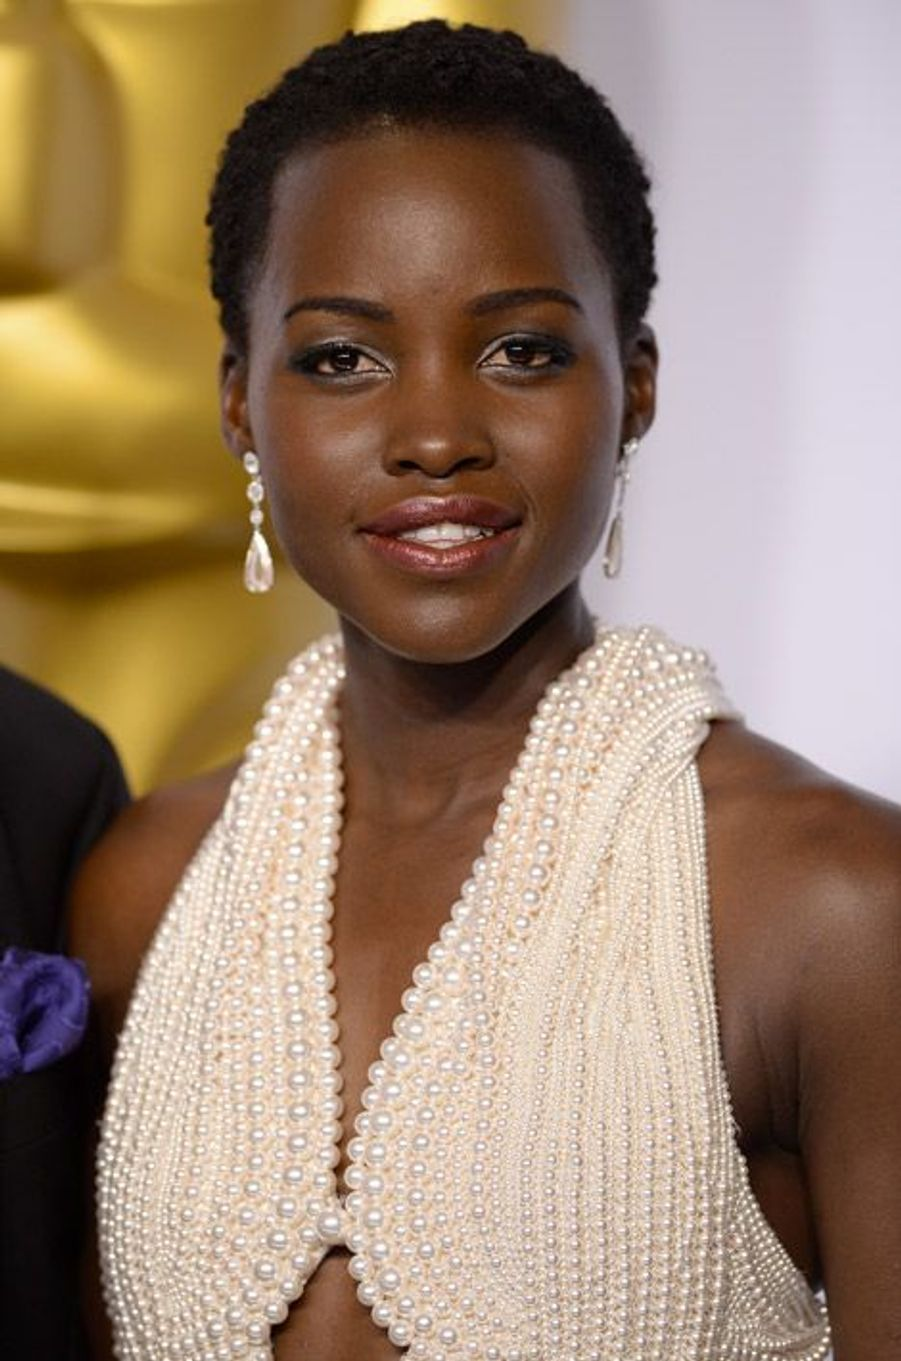 L'actrice Lupita Nyong'o ultra féminine avec ses cheveux courts